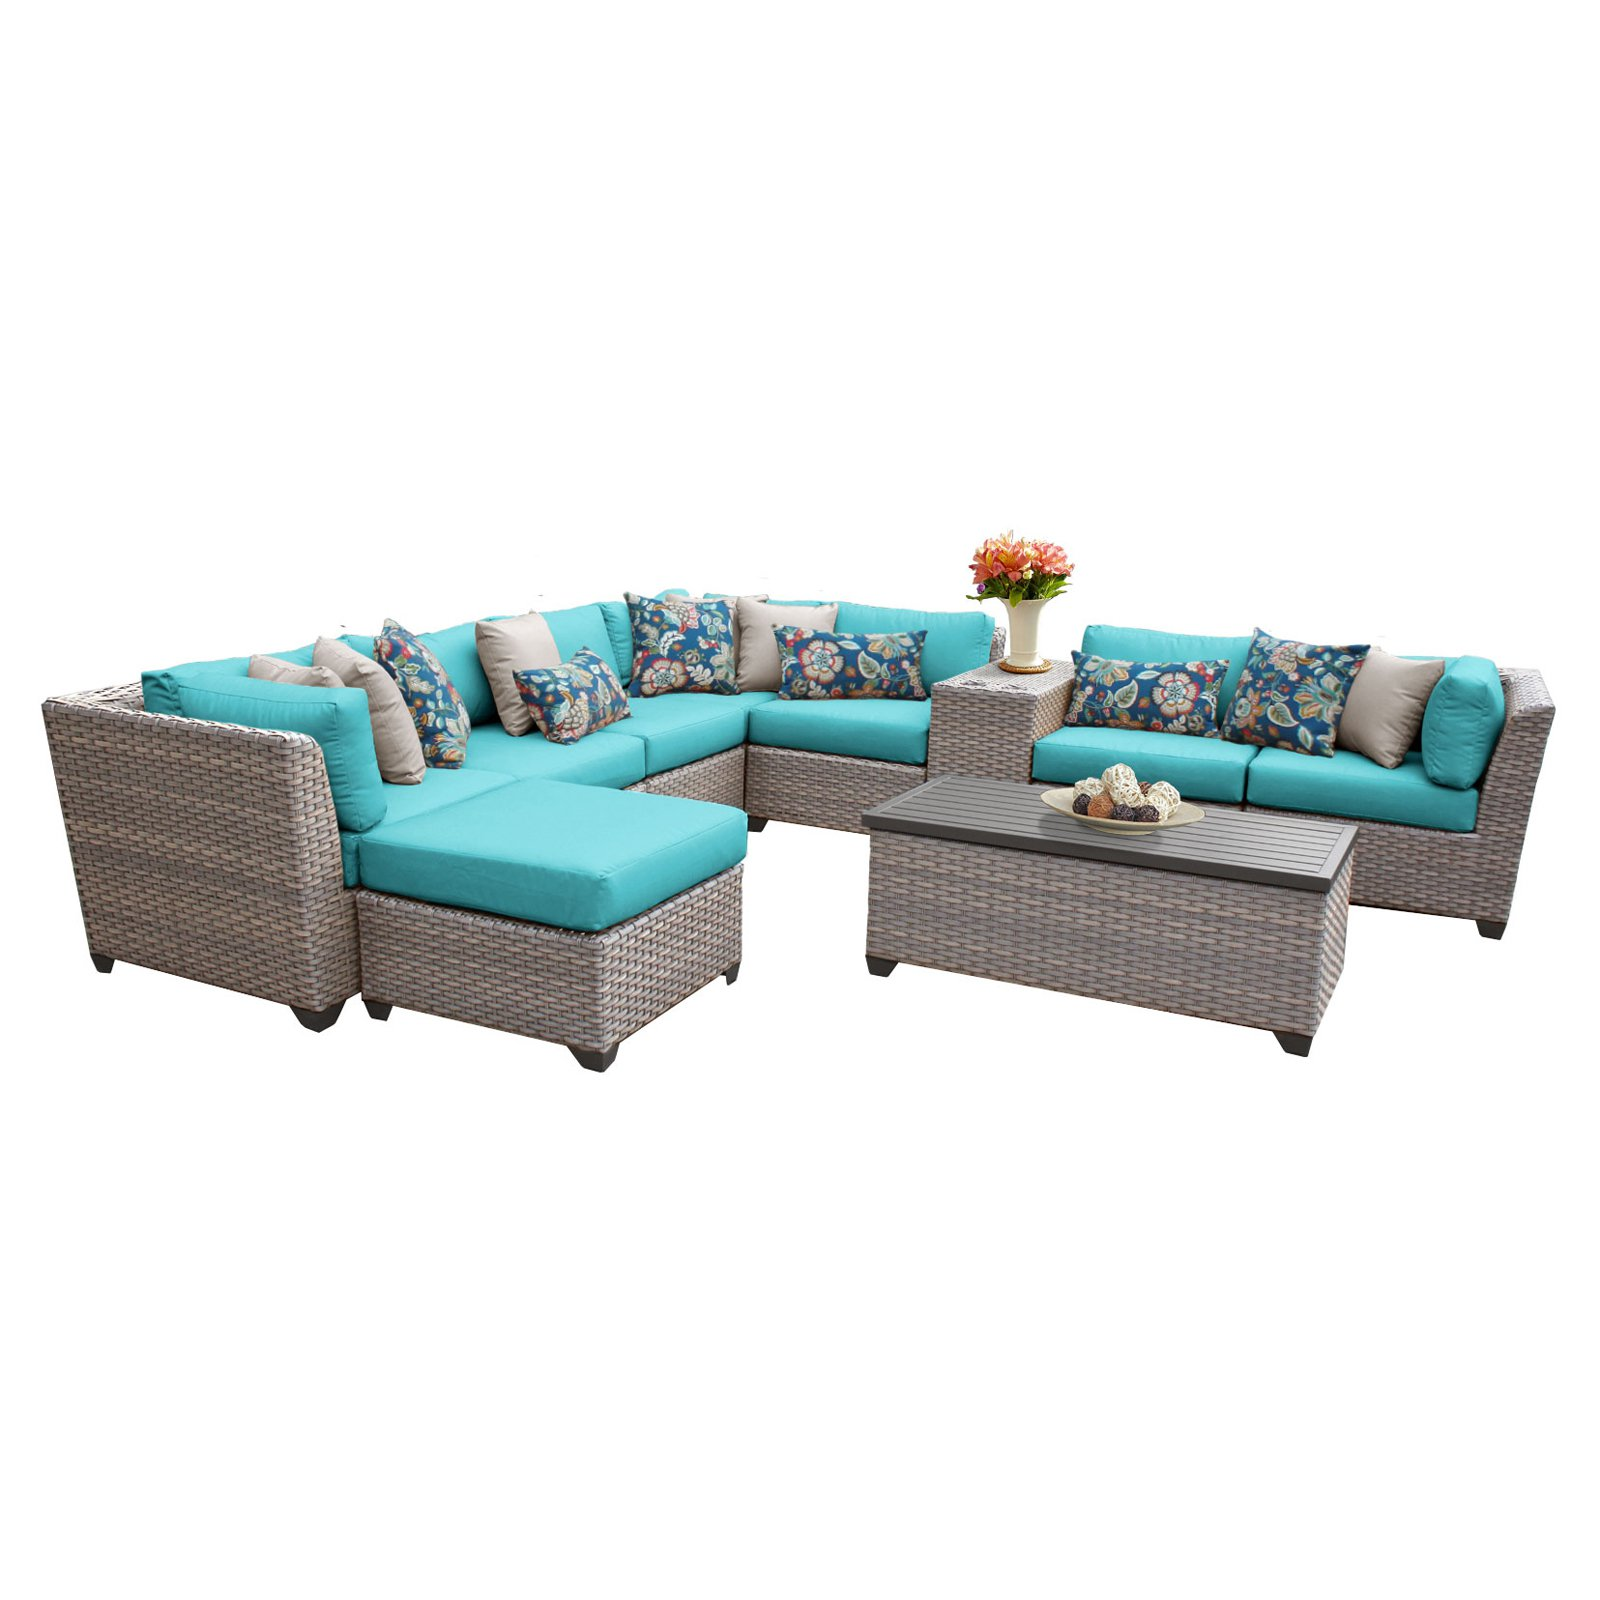 TK Classics Florence Wicker 10 Piece Patio Conversation Set with Ottoman and 2 Sets of Cushion Covers by Delacora